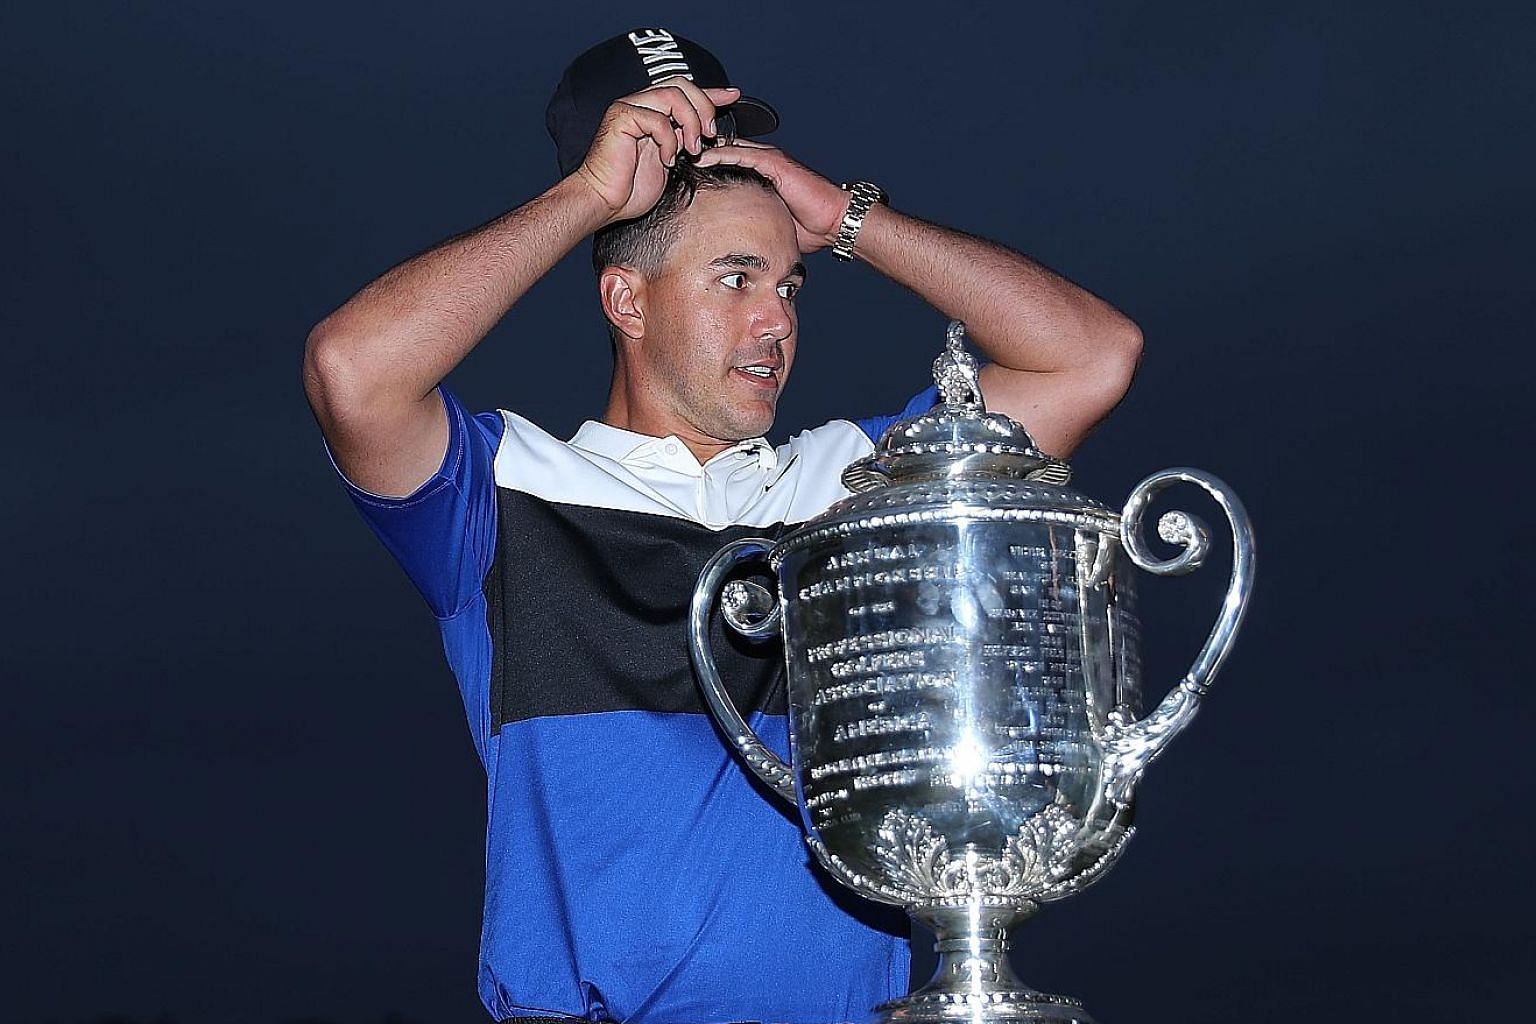 A relieved Brooks Koepka with the Wanamaker Trophy after retaining the PGA Championship at the Bethpage Black Course in Farmingdale, New York on Sunday. Runner-up Dustin Johnson has now finished second at all four Major championships.